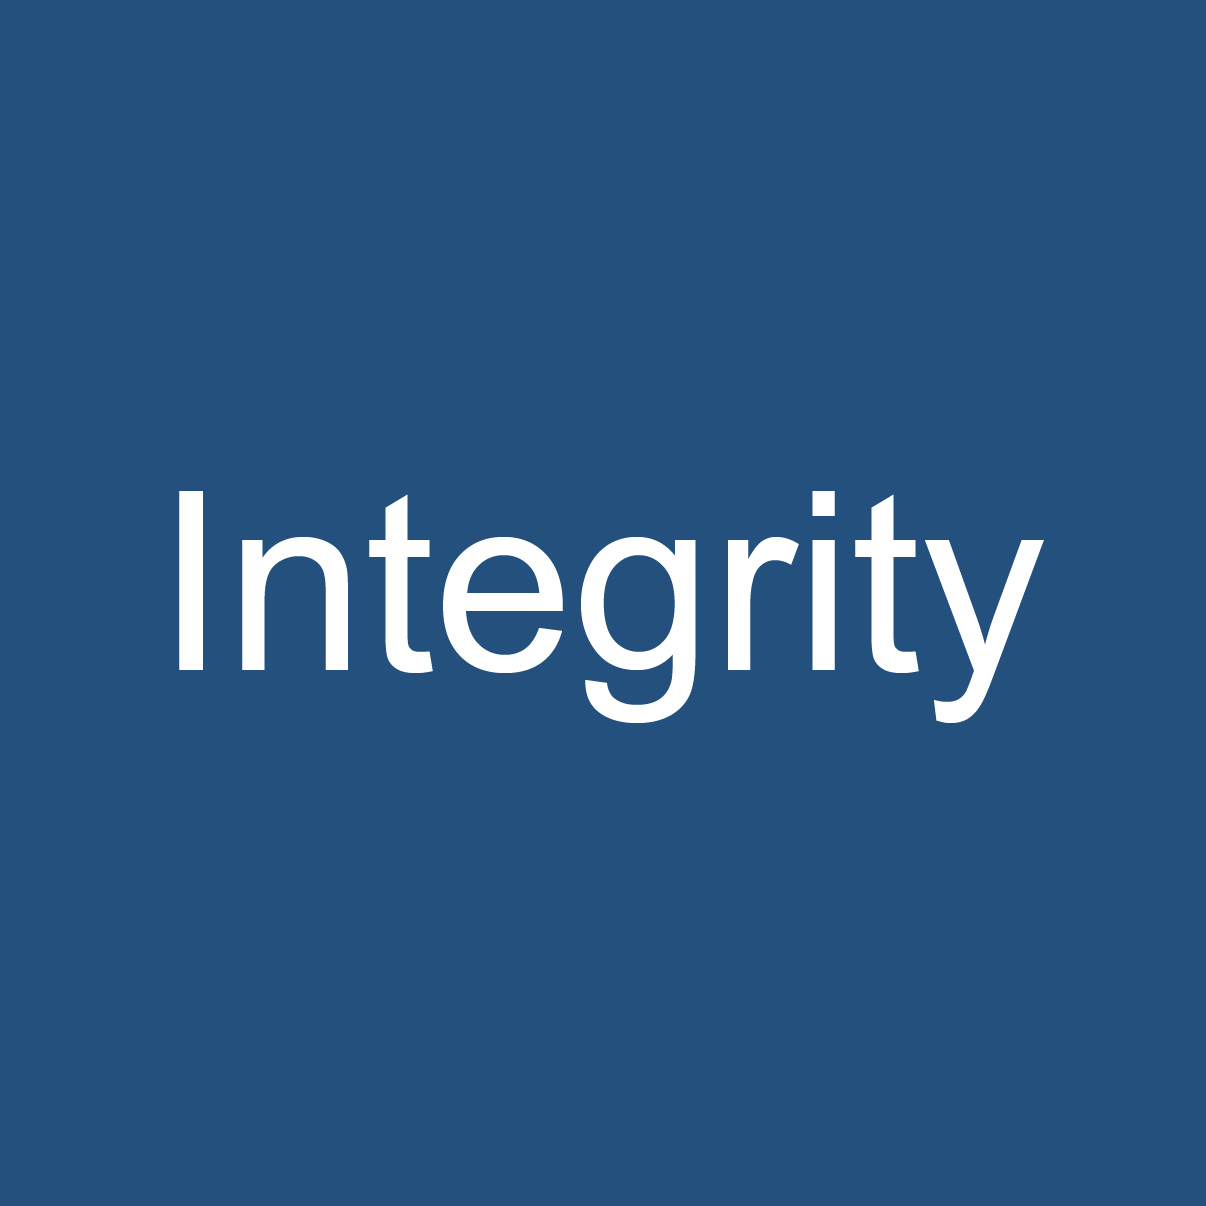 Integrity in international justice